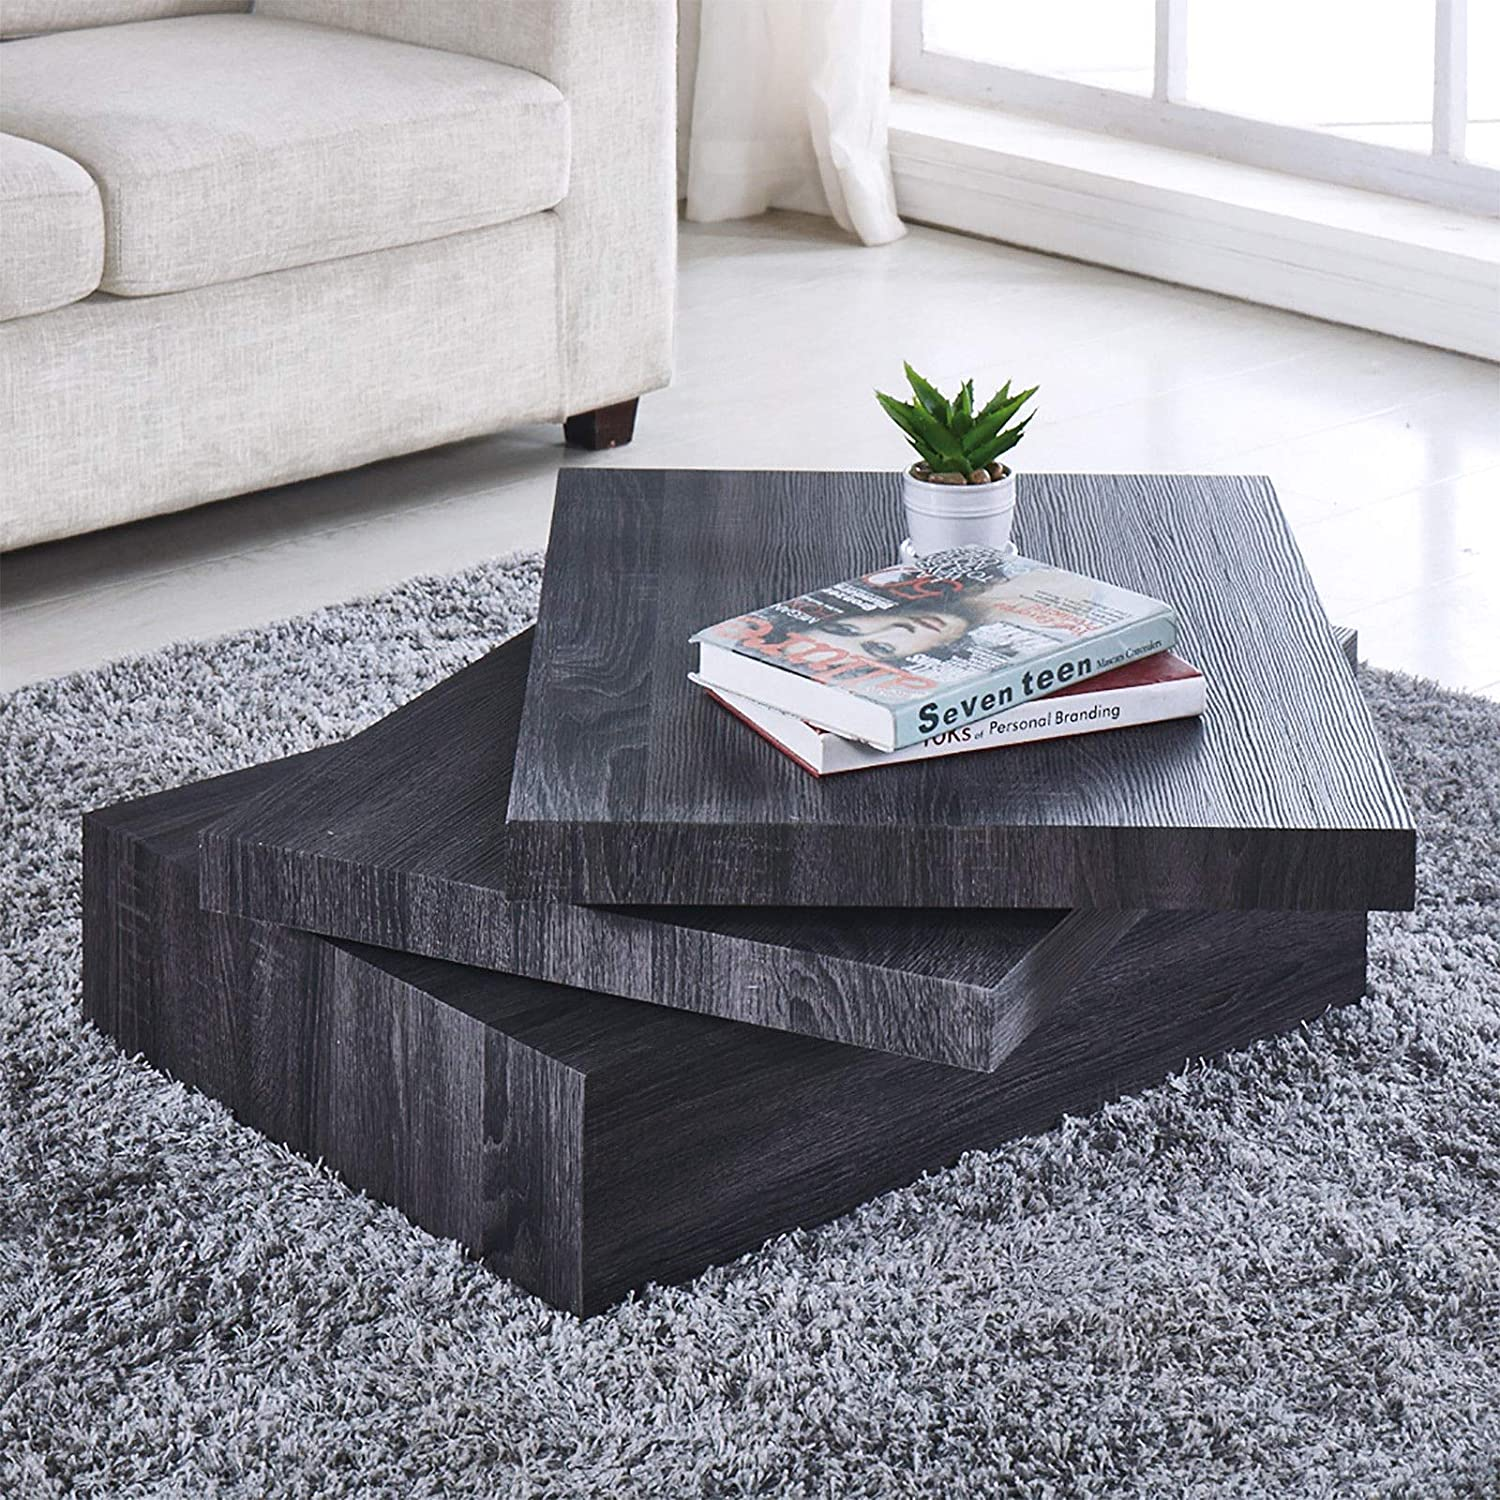 27 Best Coffee Tables in 2019 That Work With Any Room Styles